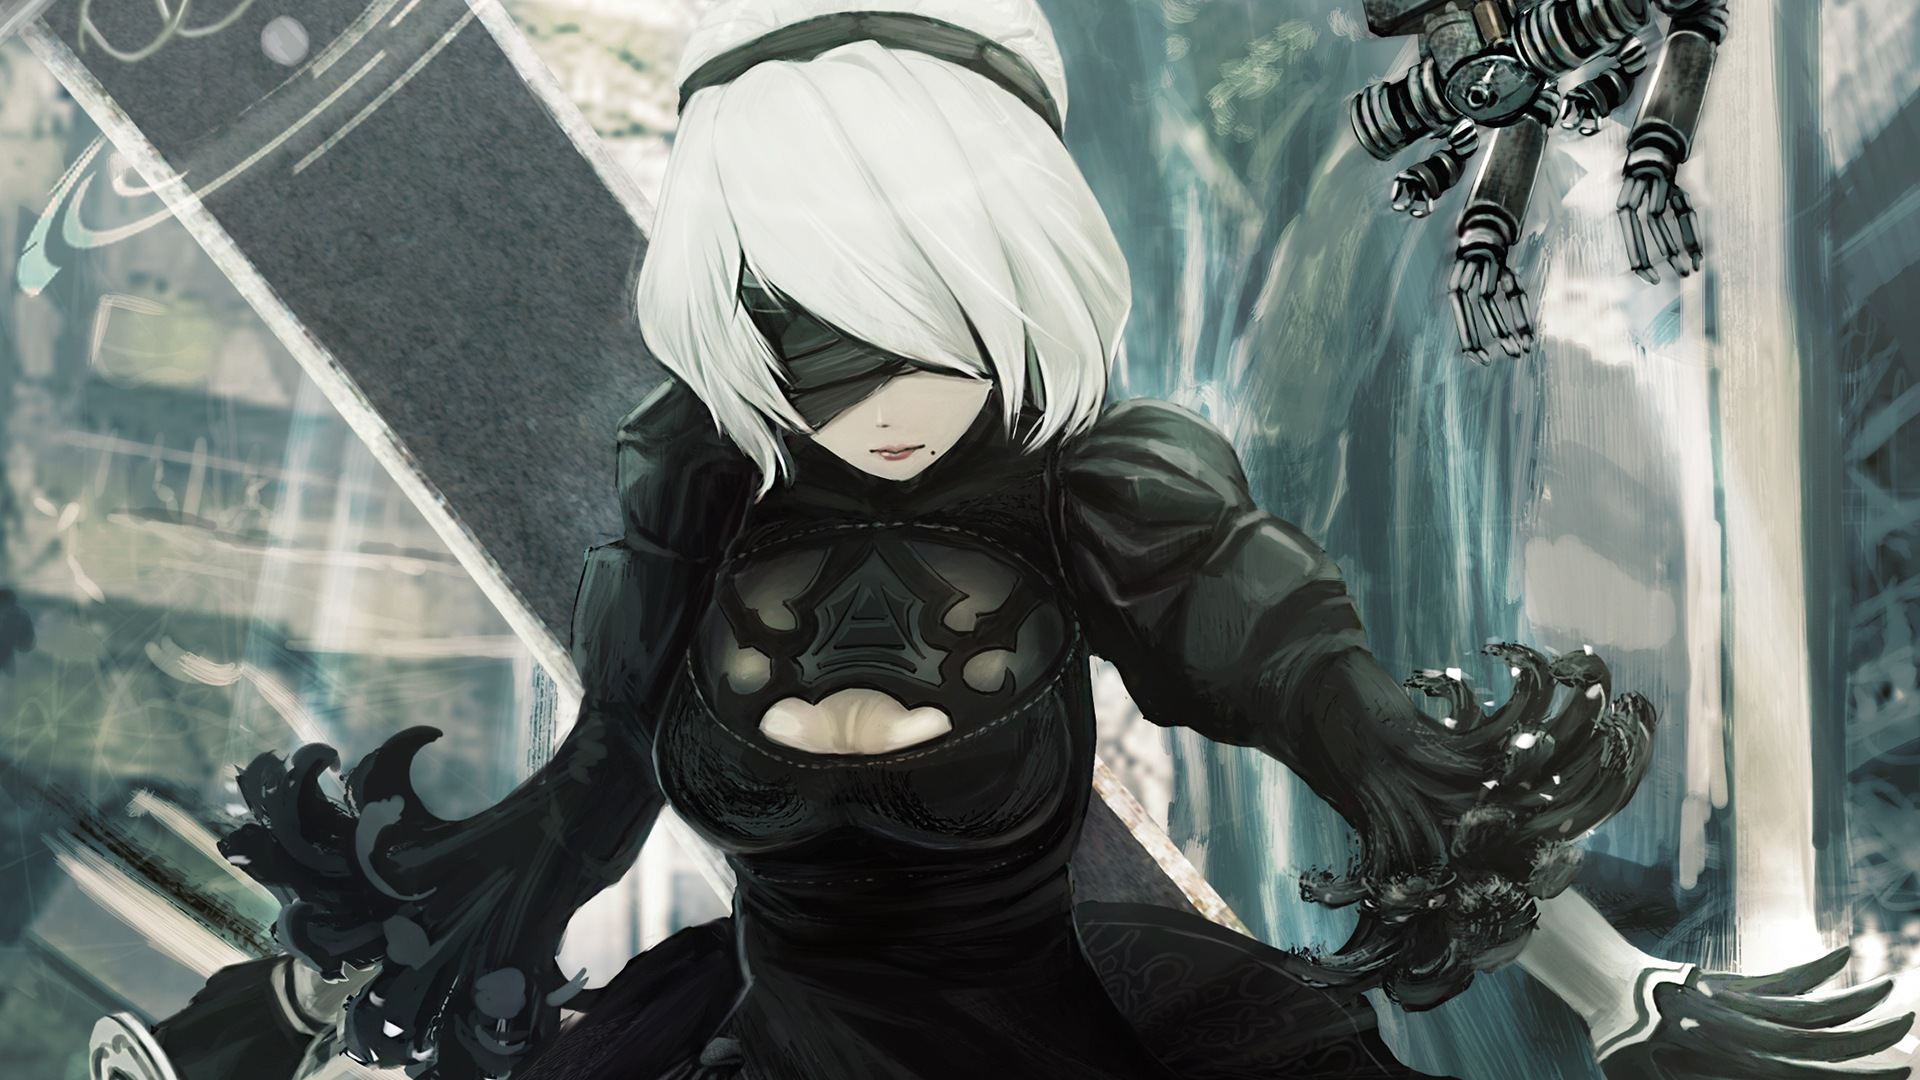 Hd wallpaper nier automata - Download Wallpaper Nier Automata